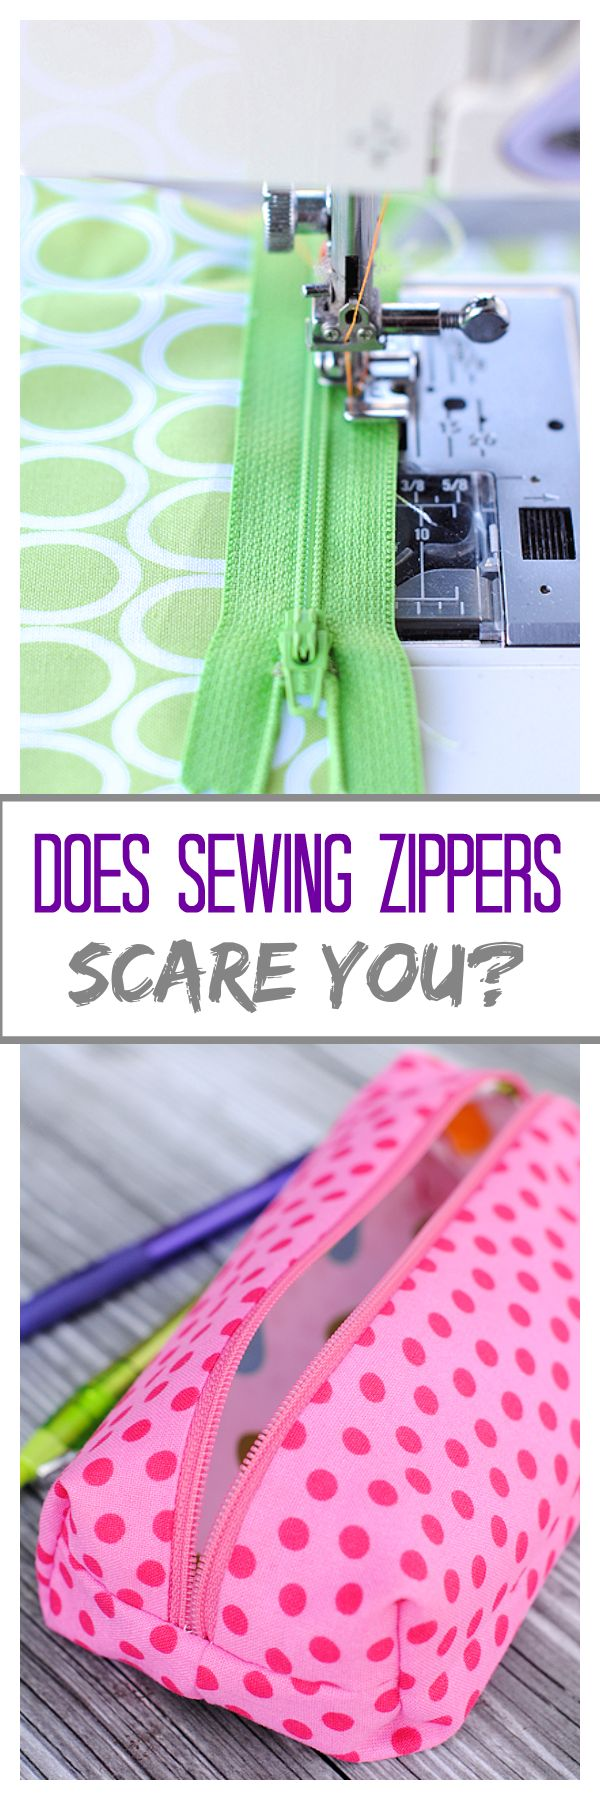 Are you scared of sewing zippers? Not anymore!